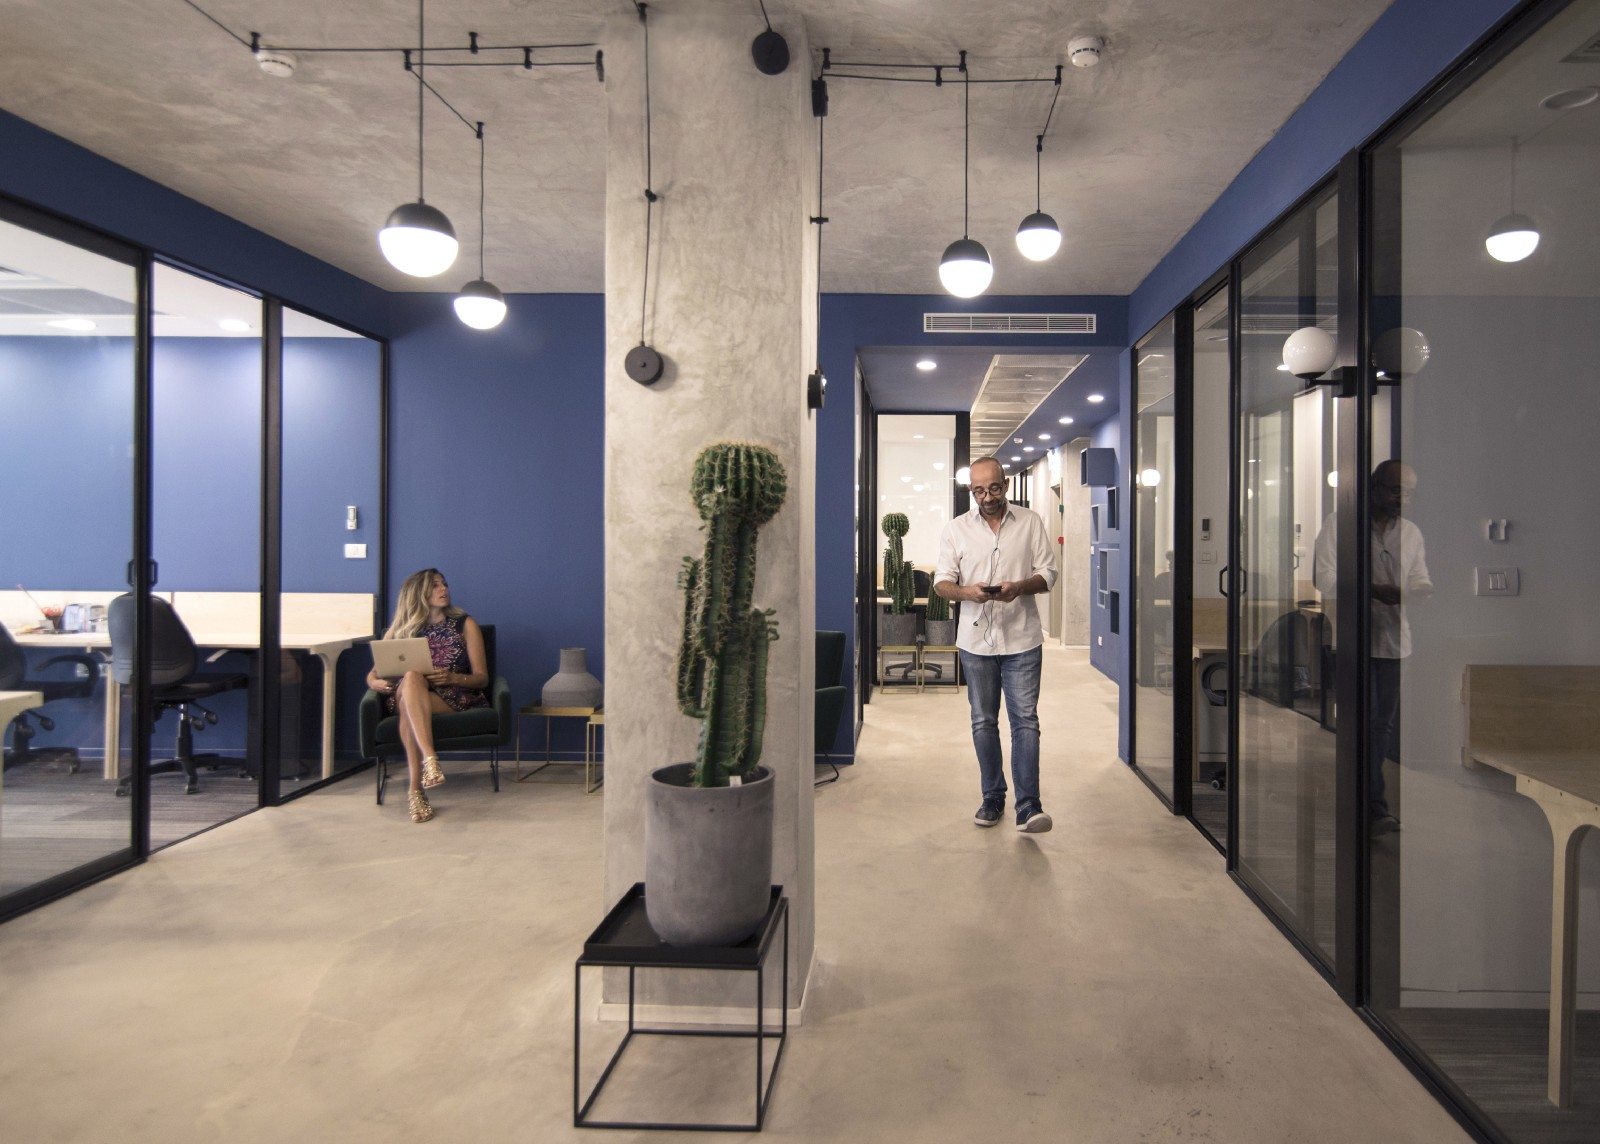 soundproofing office space. Soundproofing Issues In The Modern Coworking Spaces: How Sound Affects Way You Work? Office Space